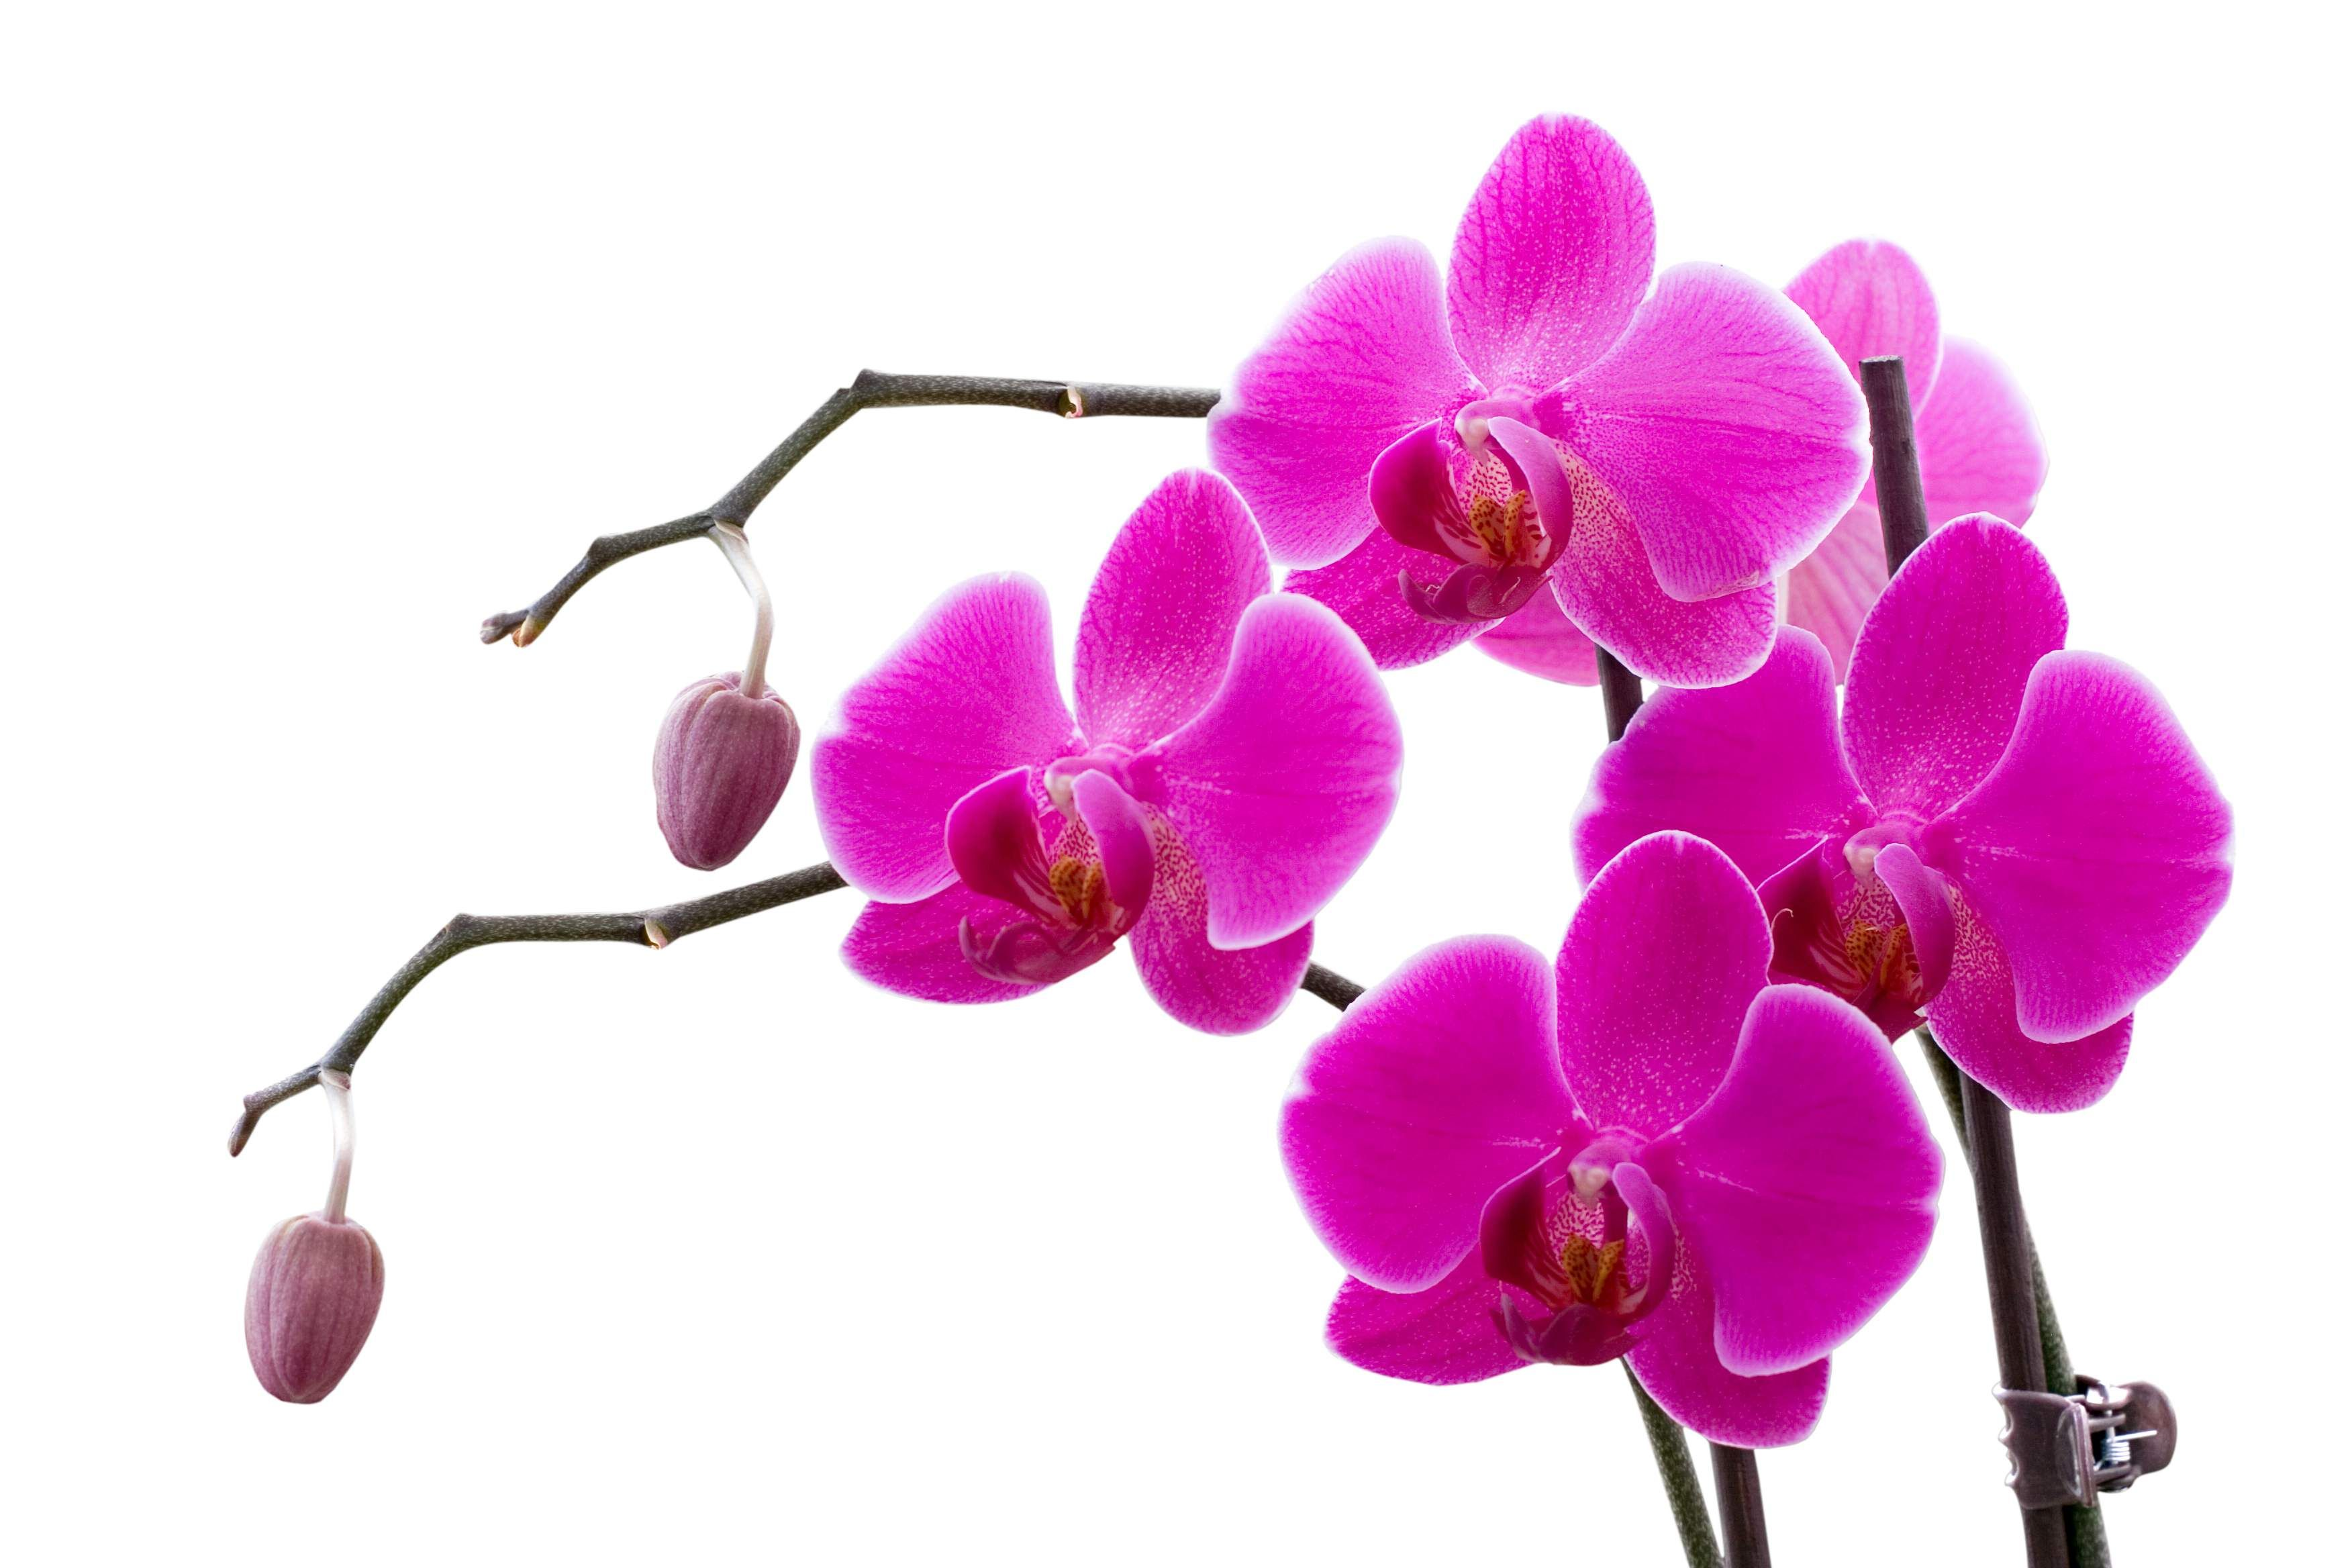 orchid images - Google Search   Orchids   Pinterest   Flowers